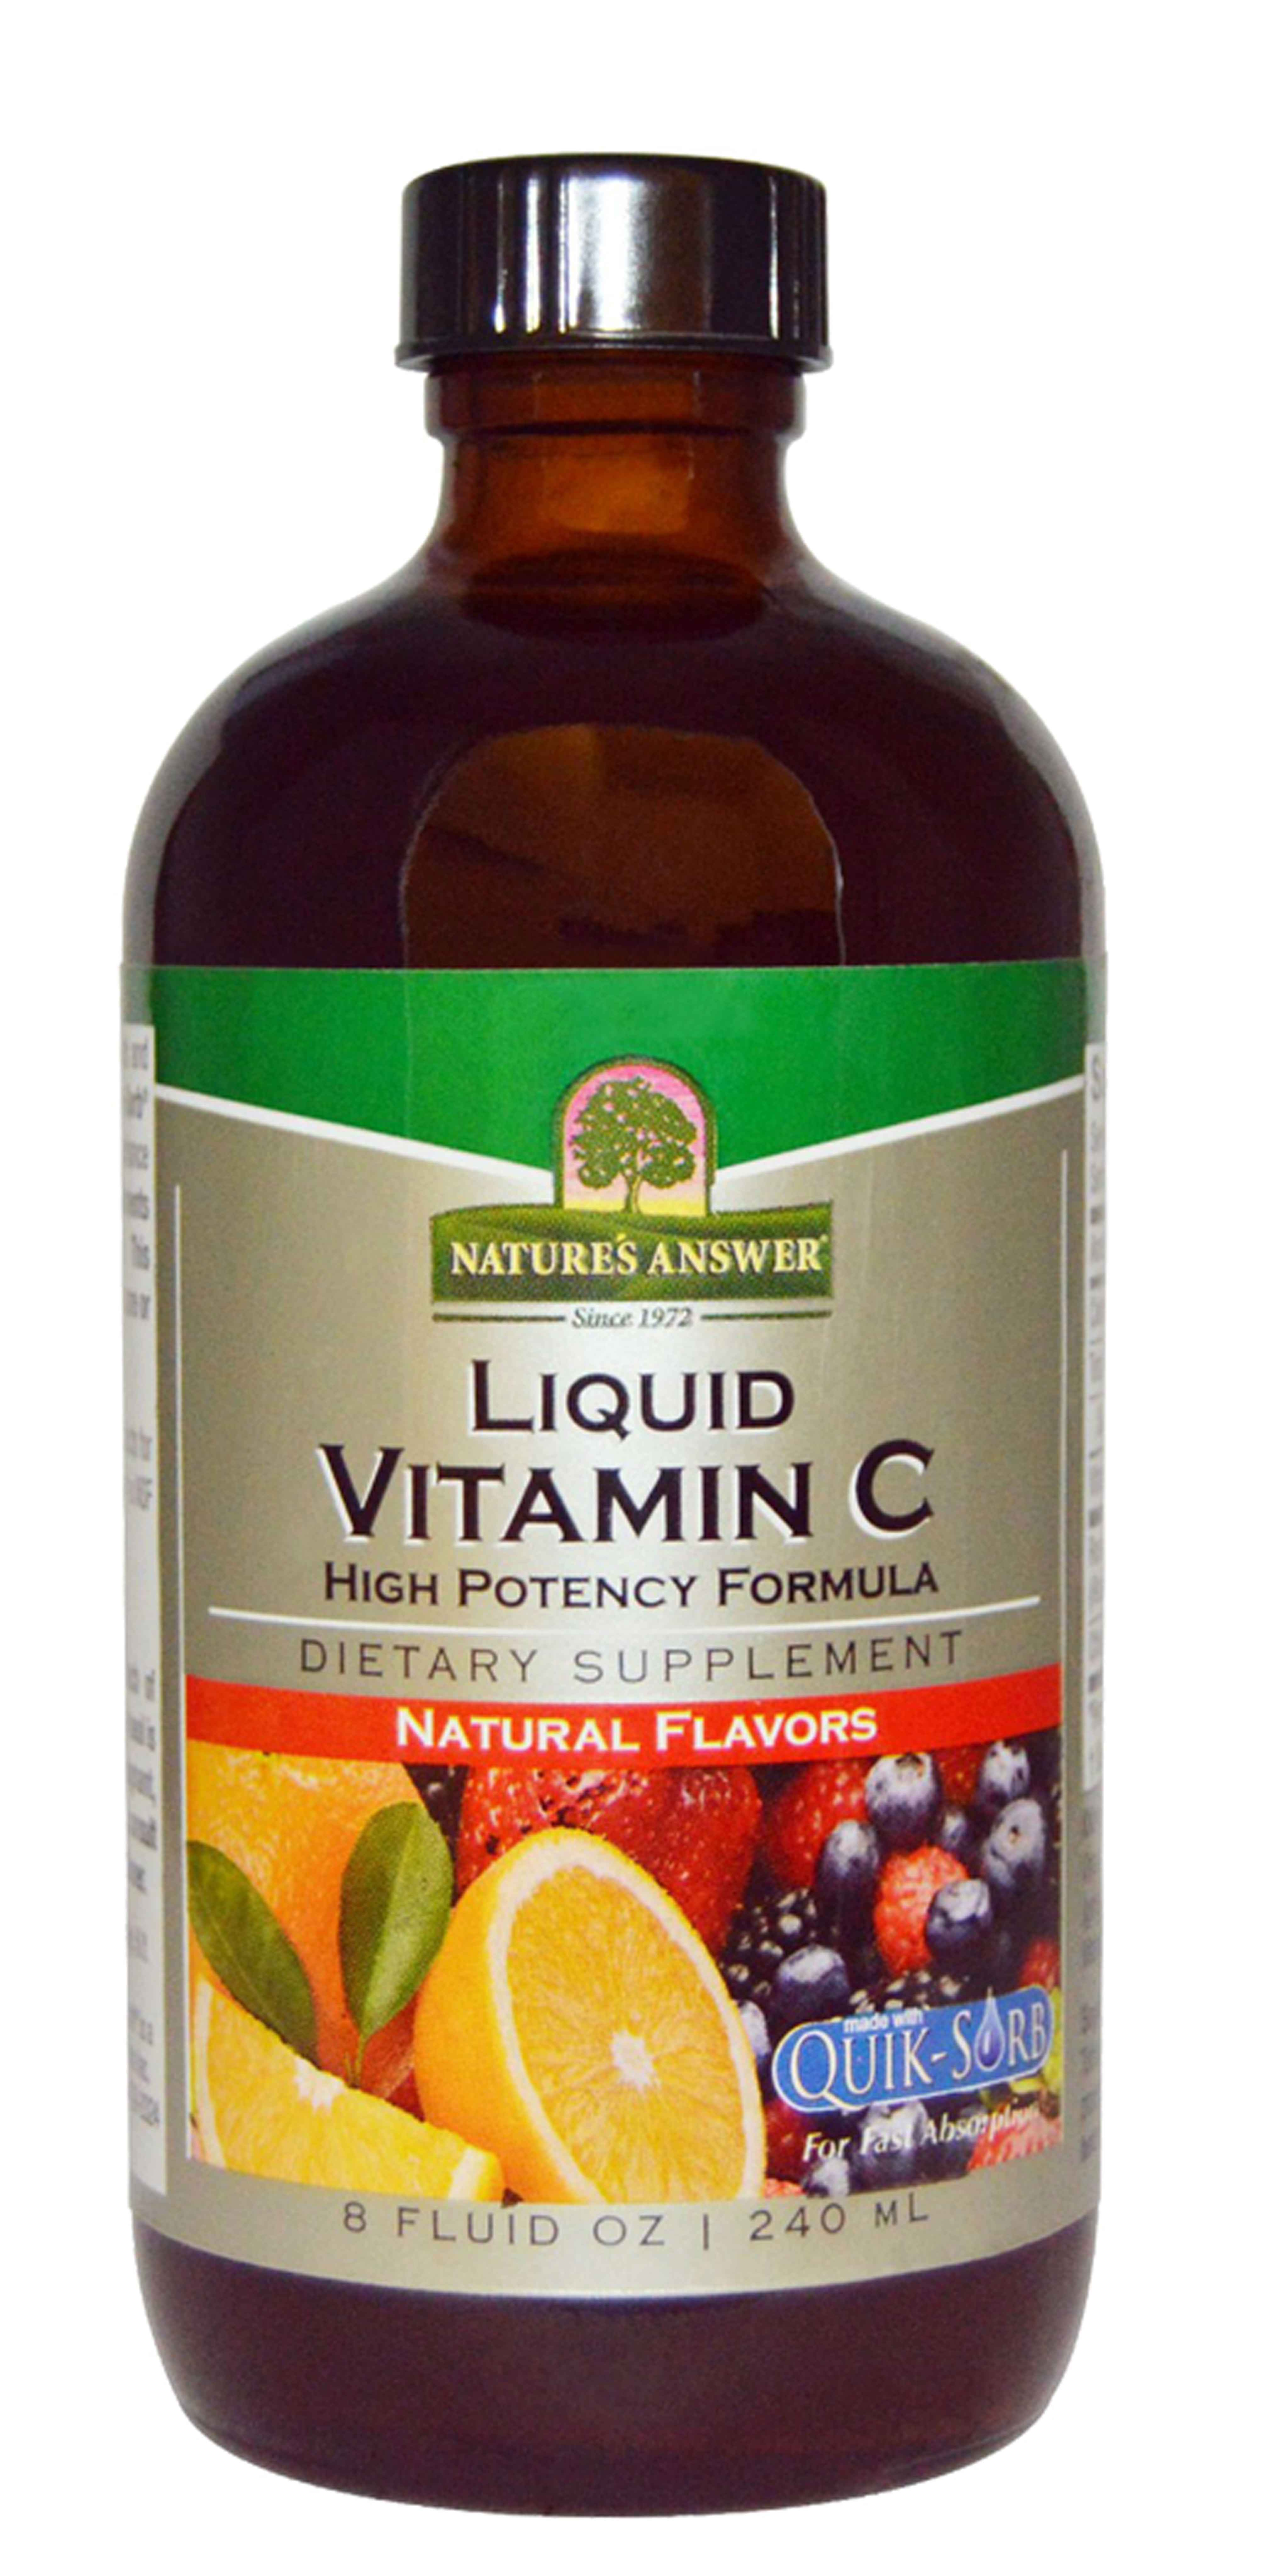 Natures Answer Liquid Vitamin C - Total Health Support Supplement - 8 Oz